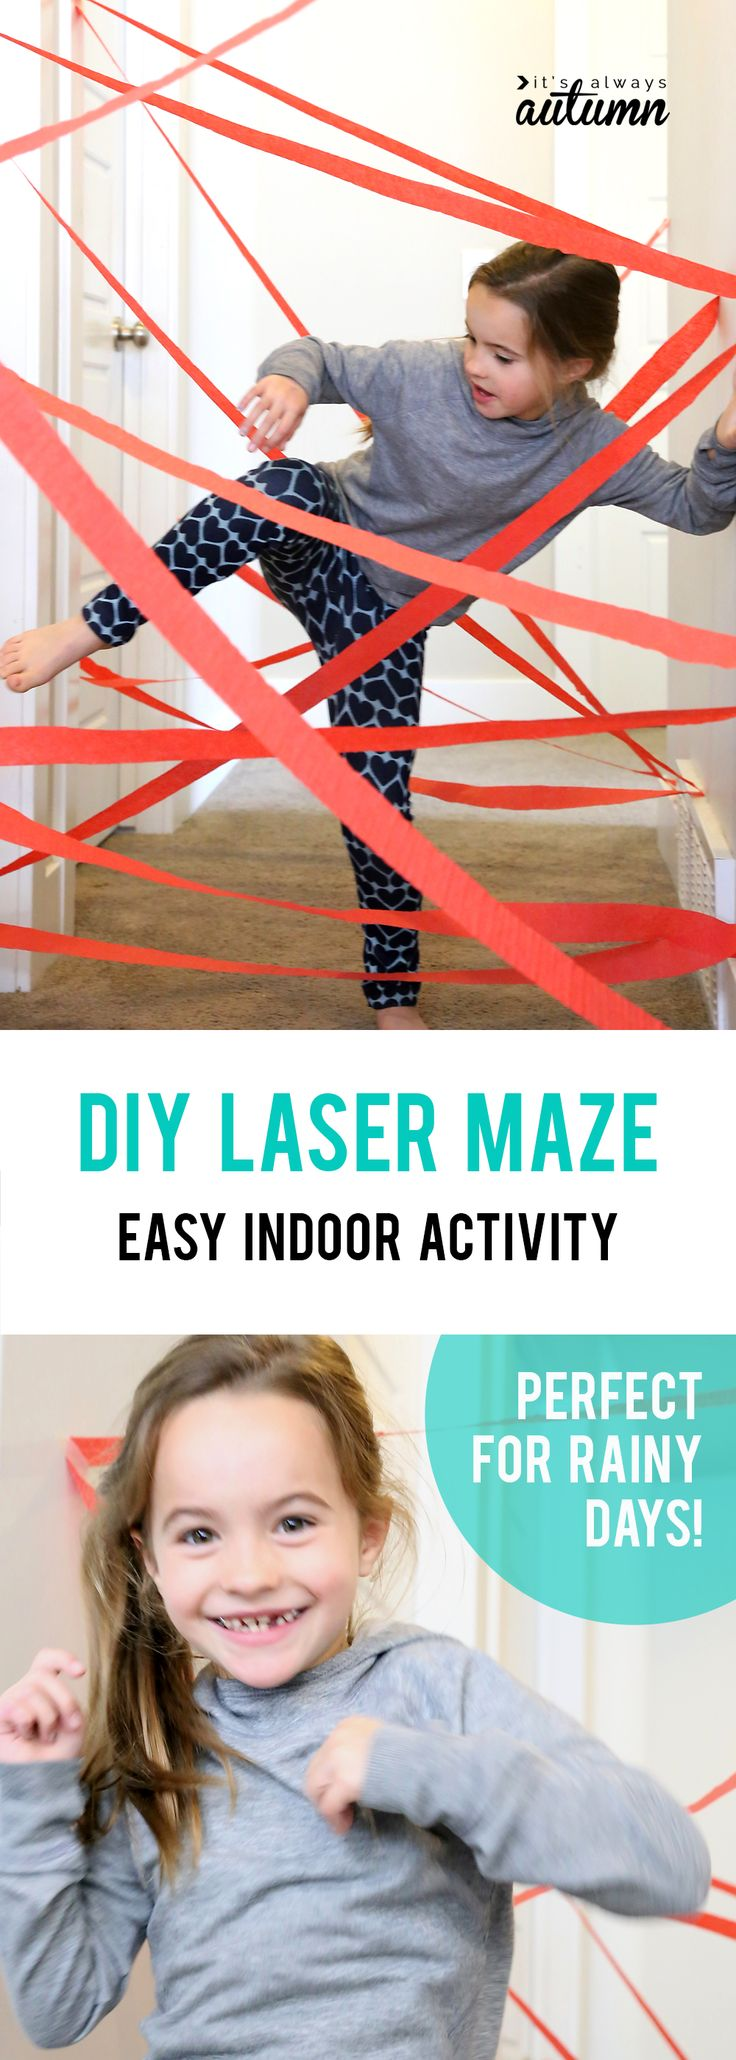 Make a hallway laser maze! Easy, inexpensive indoor activity for kids that's super fun! Perfect for kids who love playing superhero or spy - and fun for birthday parties, too.